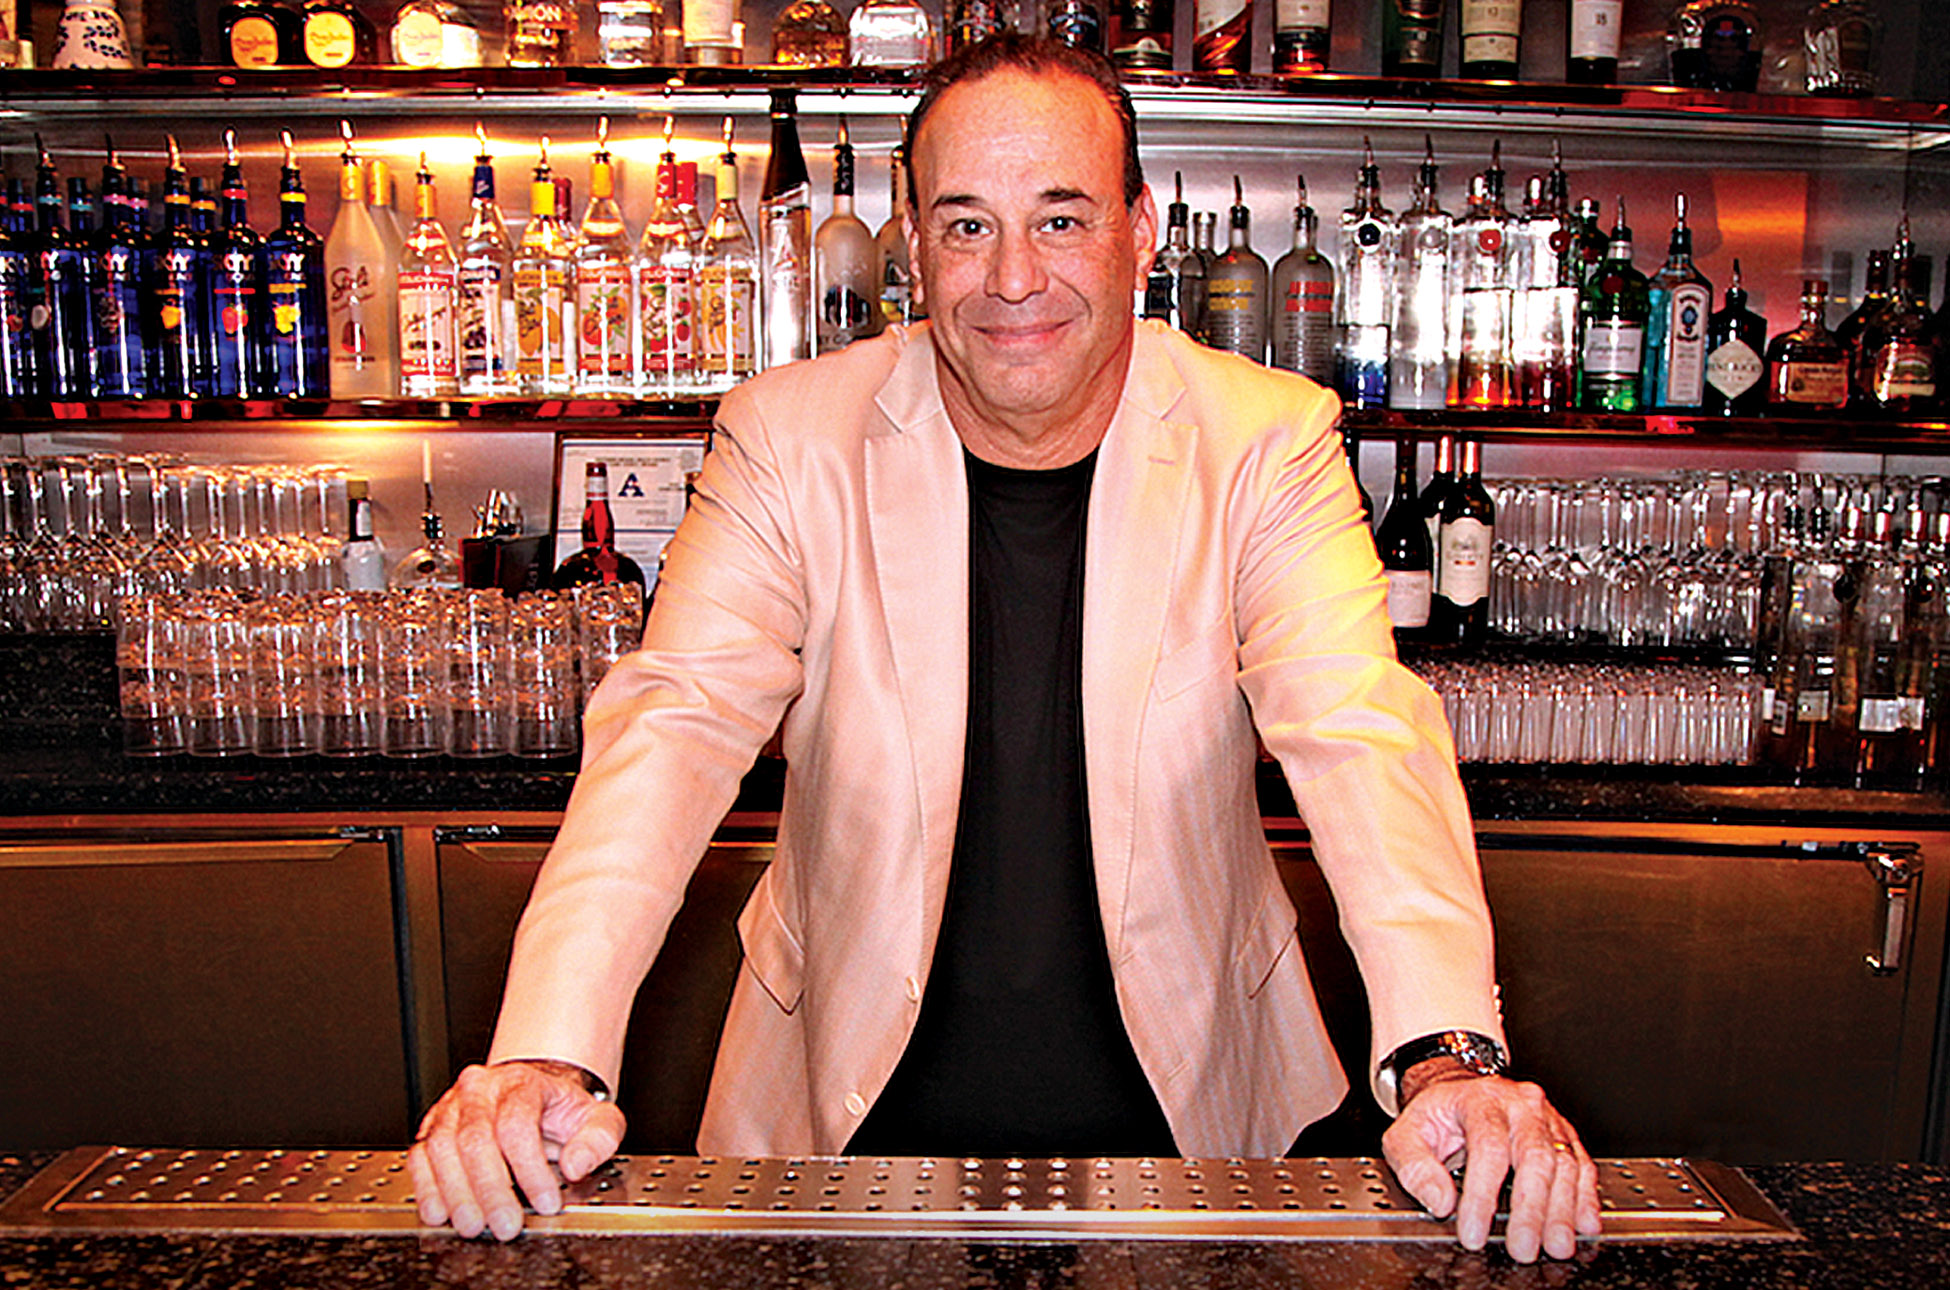 High Resolution Wallpaper | Bar Rescue 1950x1290 px